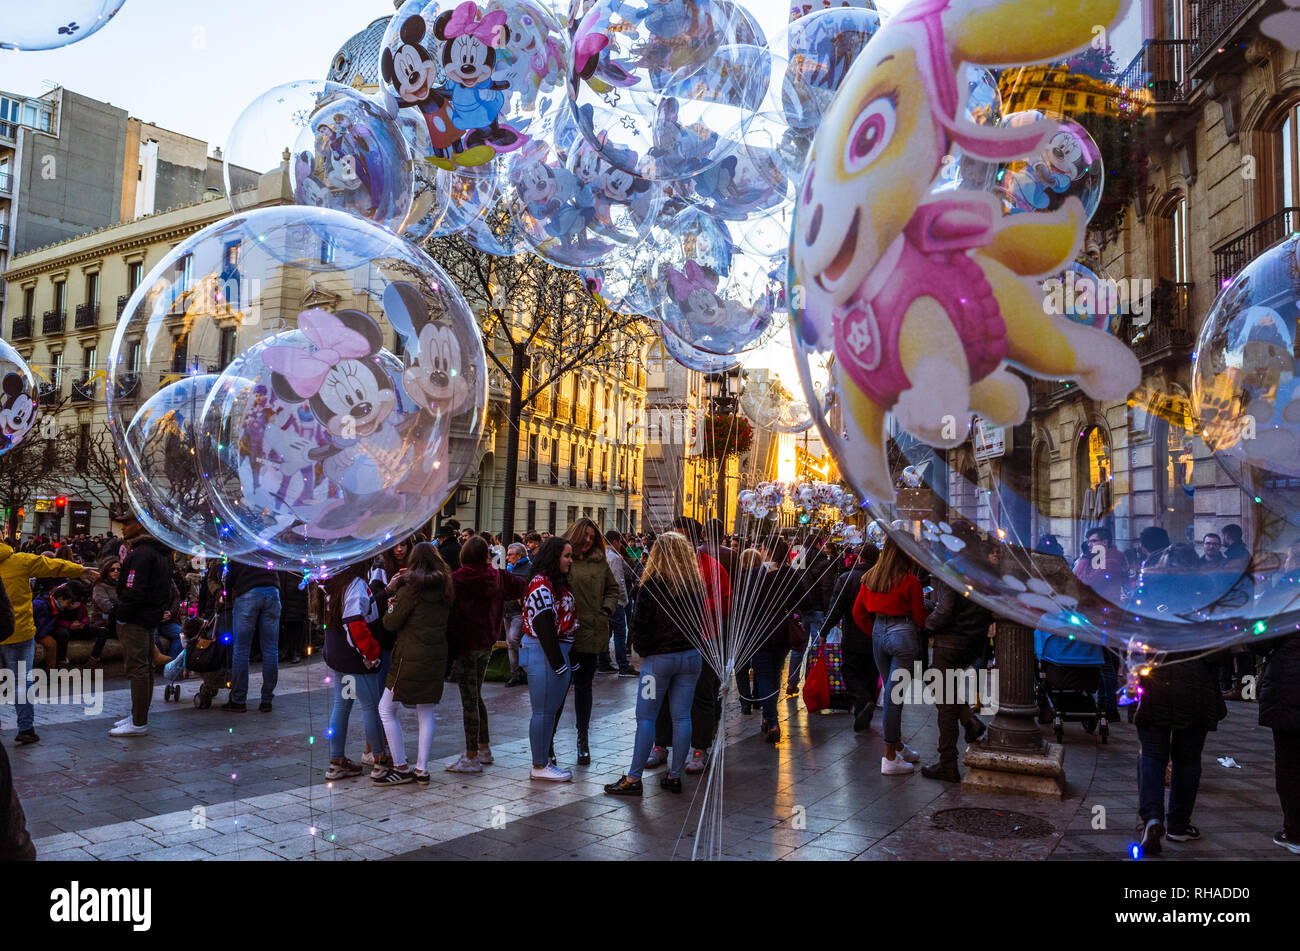 Granada, Andalusia, Spain - January 5th, 2019 : People gather in Puerta Real square waiting for the Cabalgata de Reyes Magos (Kings' Day parade) - Stock Image